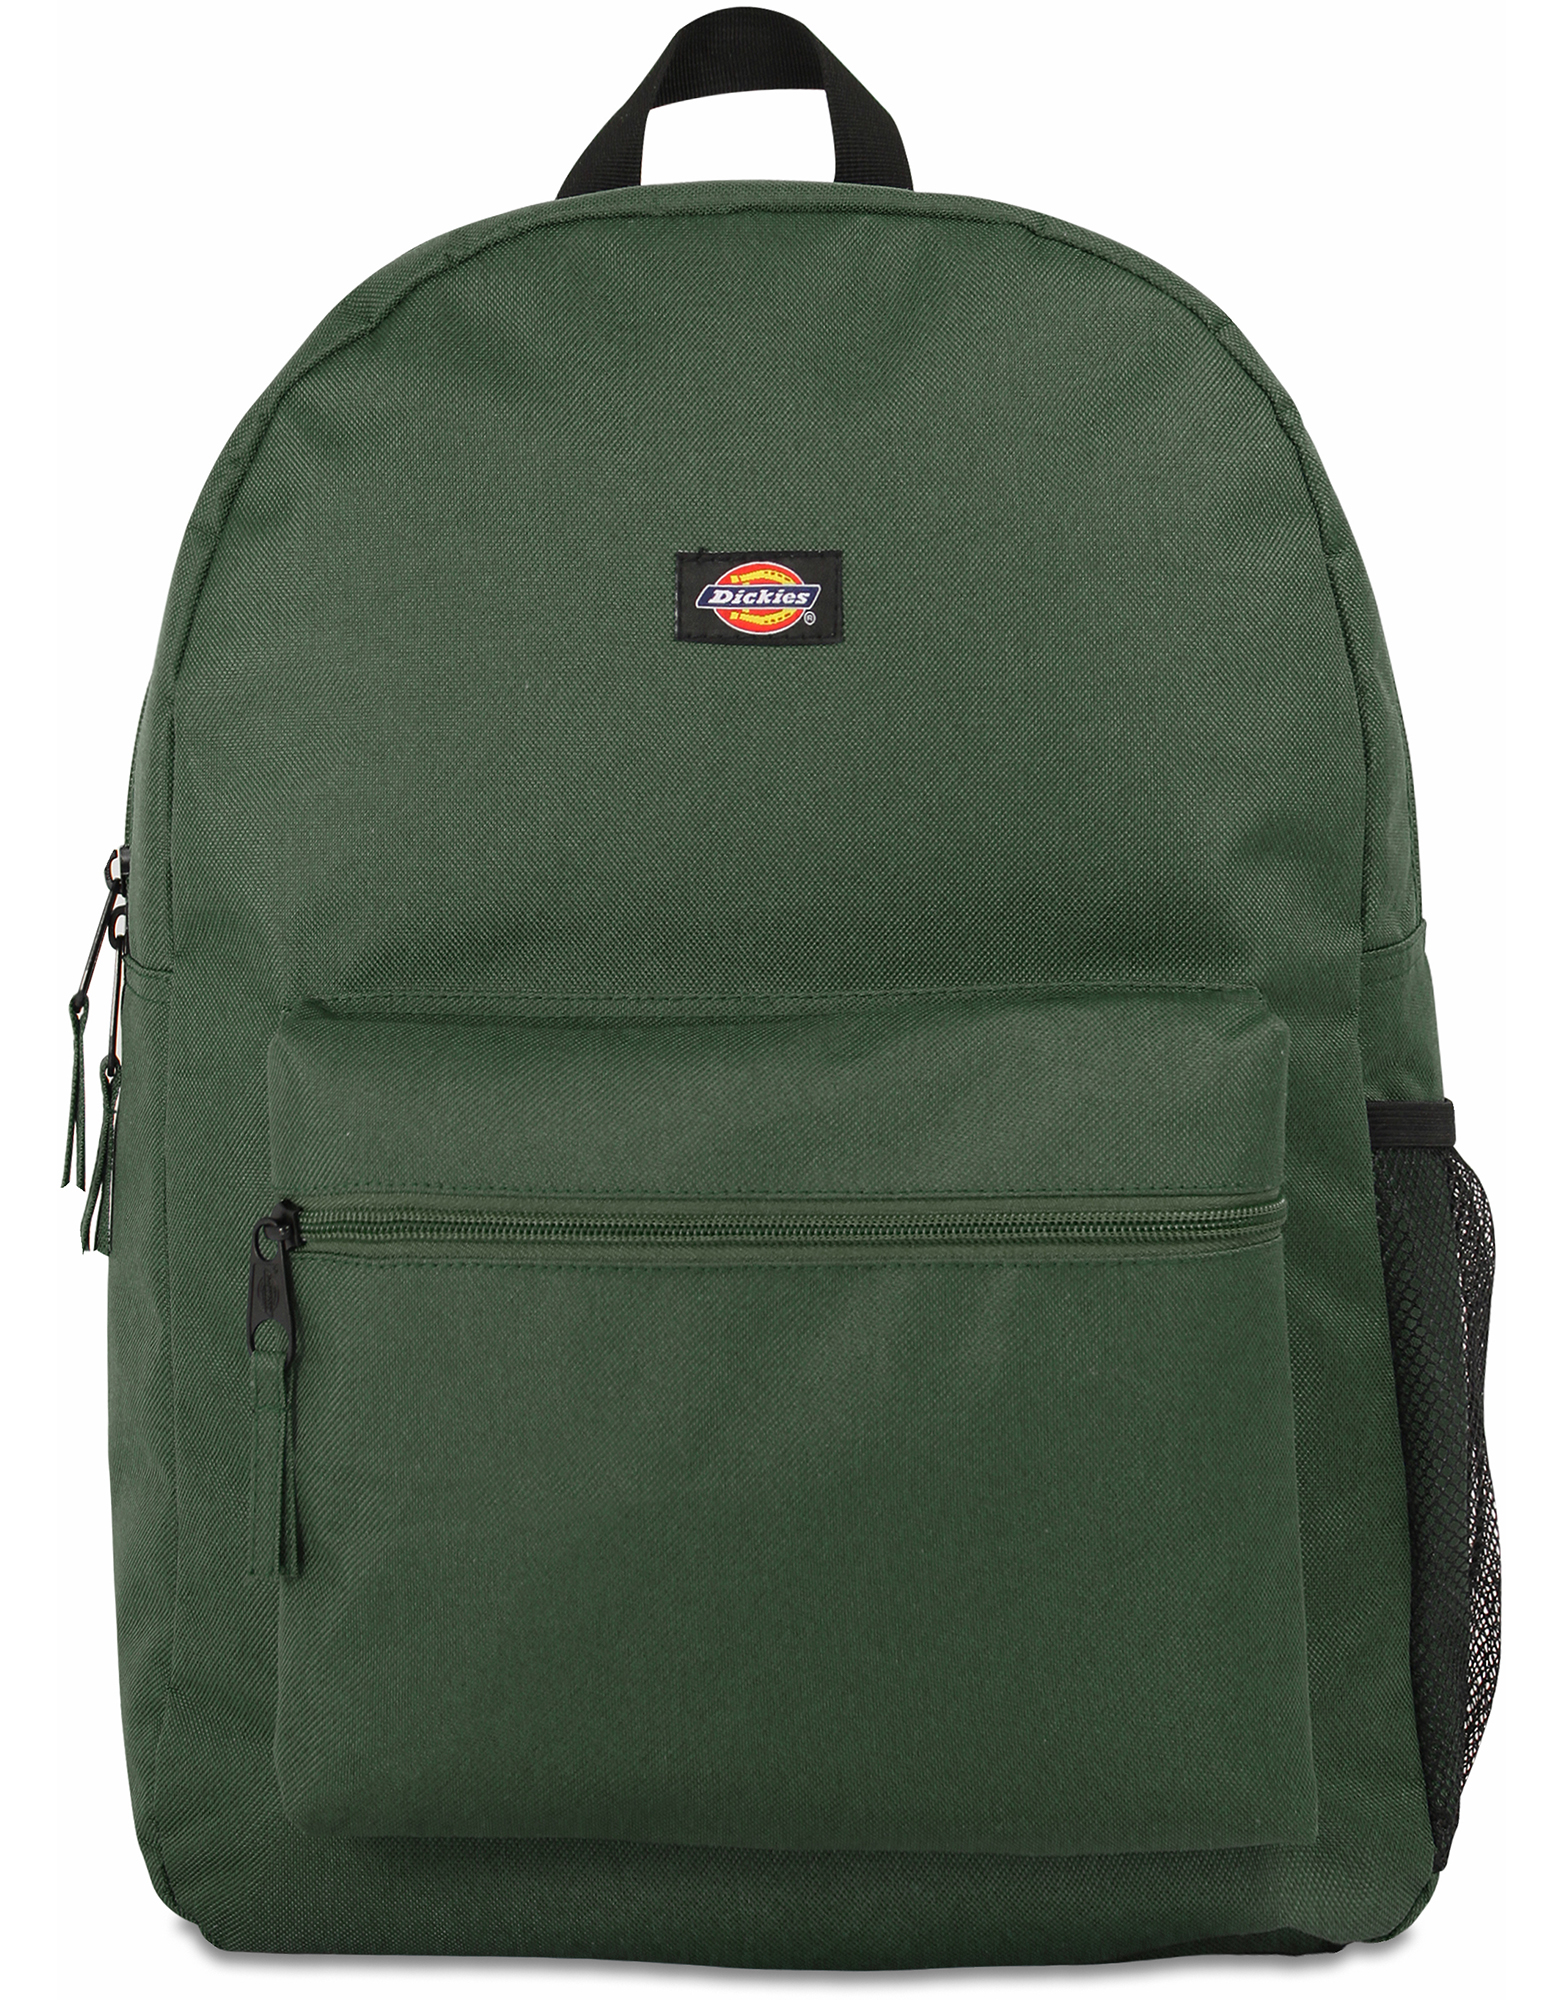 Student Backpack - FOREST (FT)